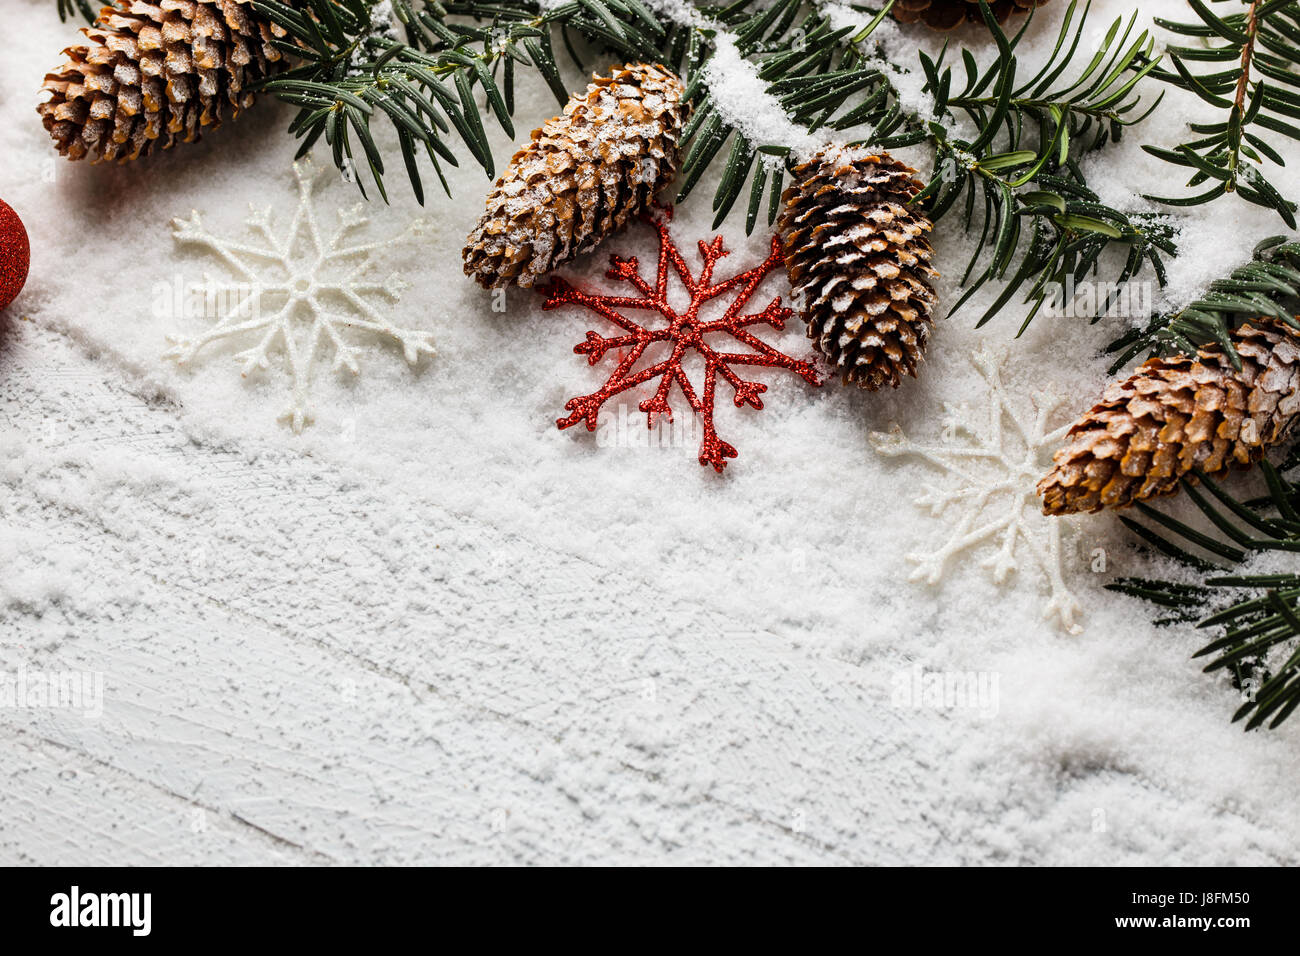 snowy christmas background with fir branch and pine cones J8FM50